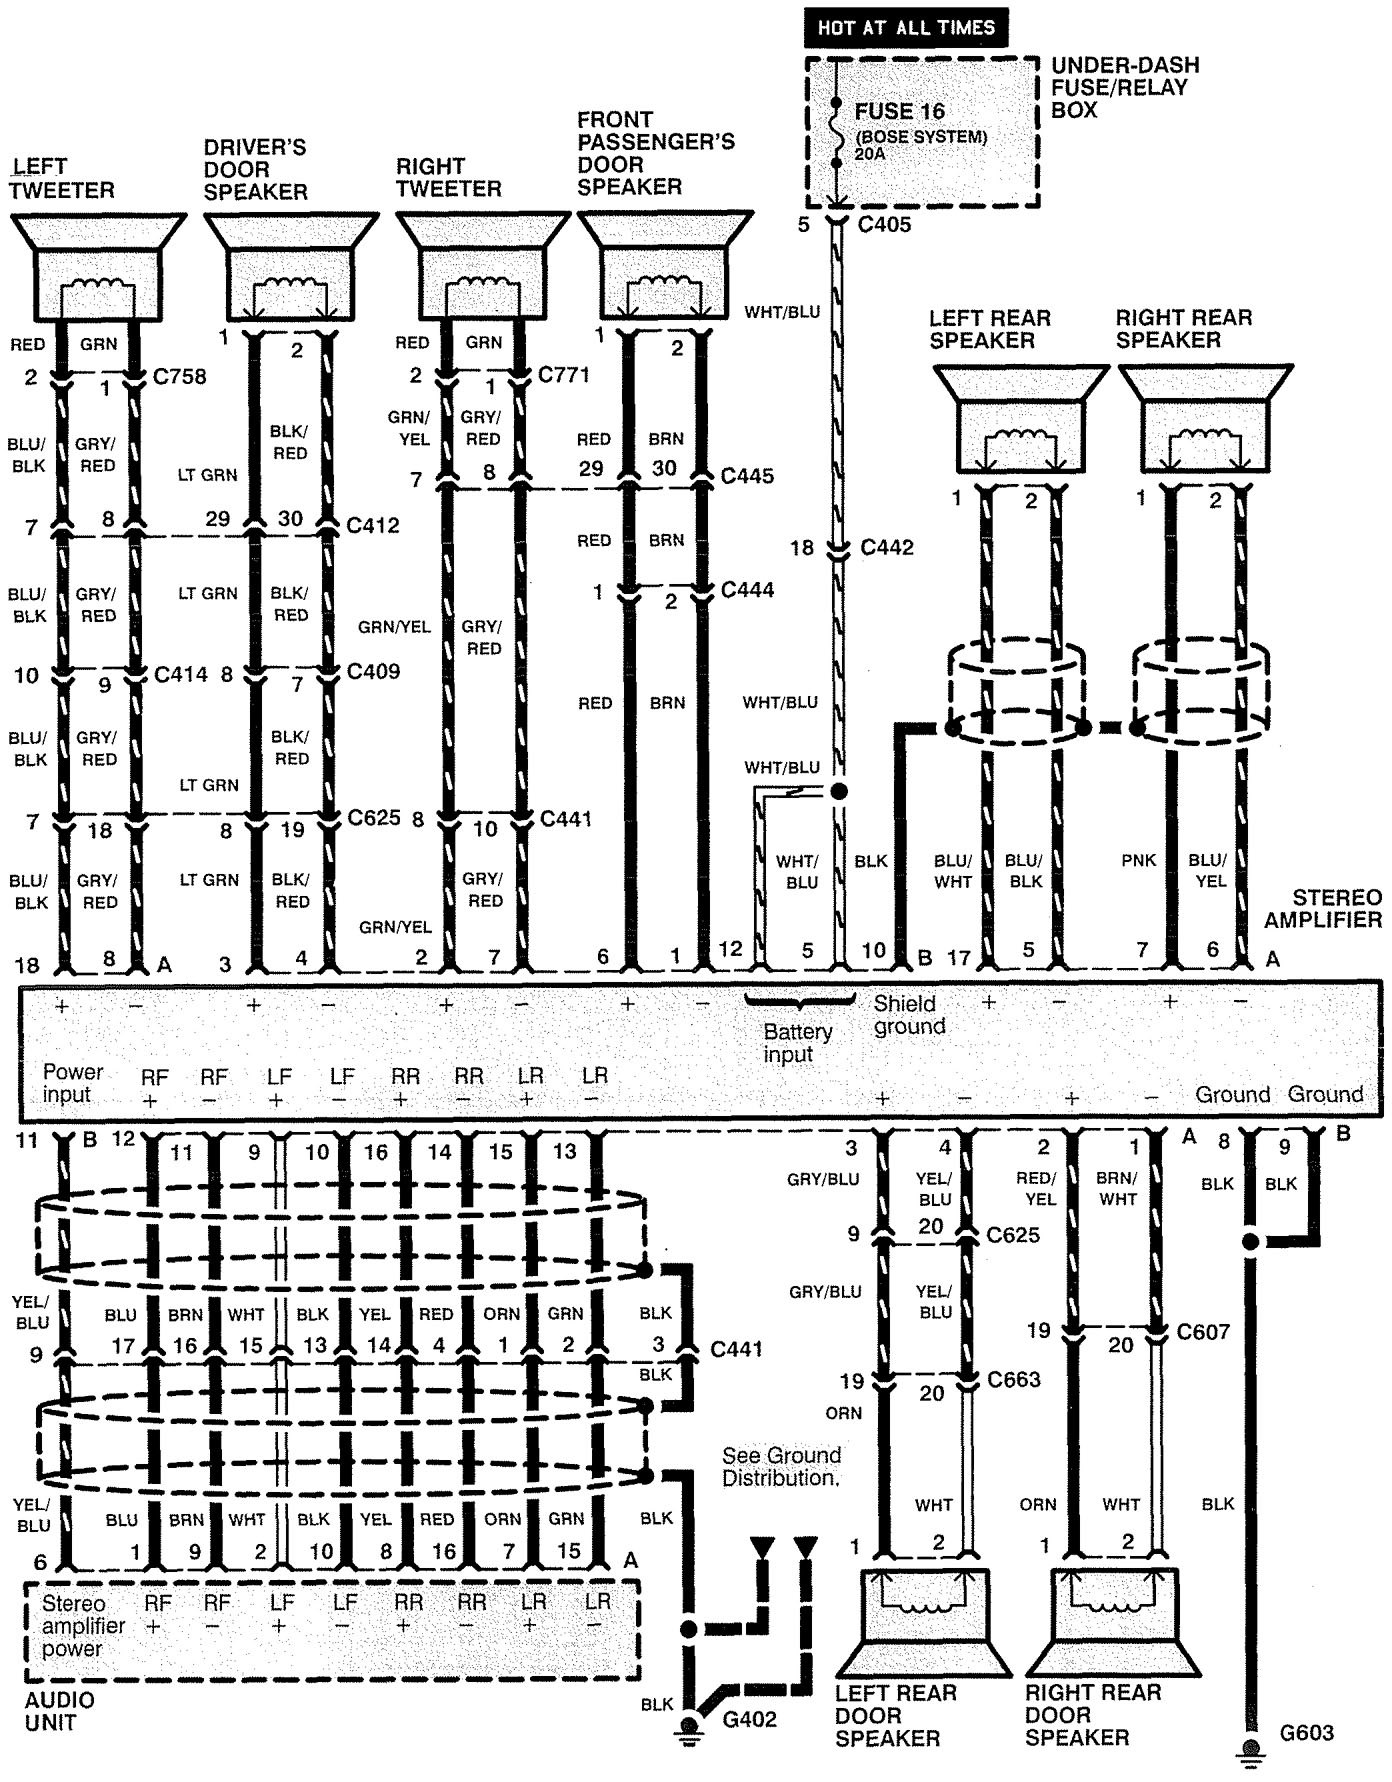 Cool wiring diagram for 1997 acura rl gallery electrical circuit